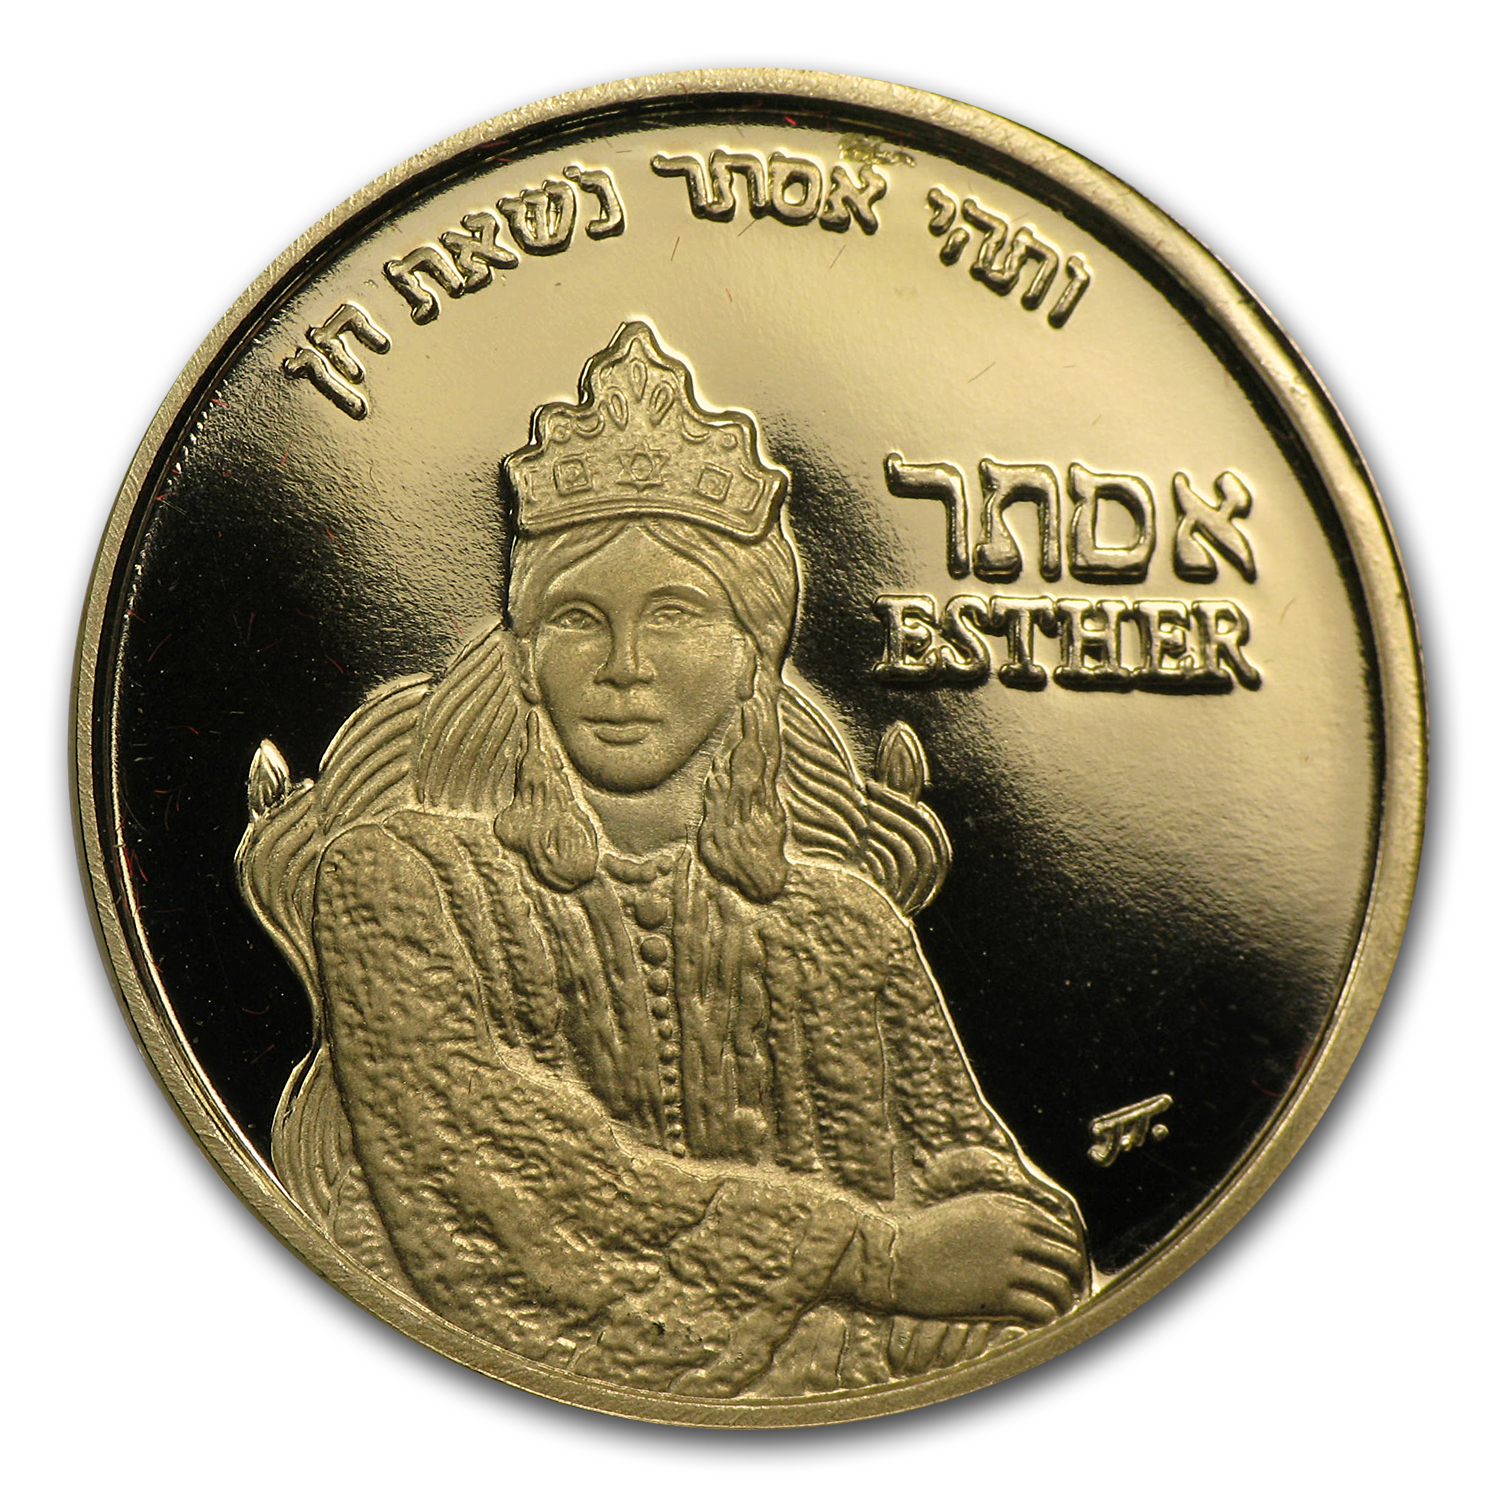 2011 Israel Proof Gold Medal Queen Esther (AGW .188 oz)